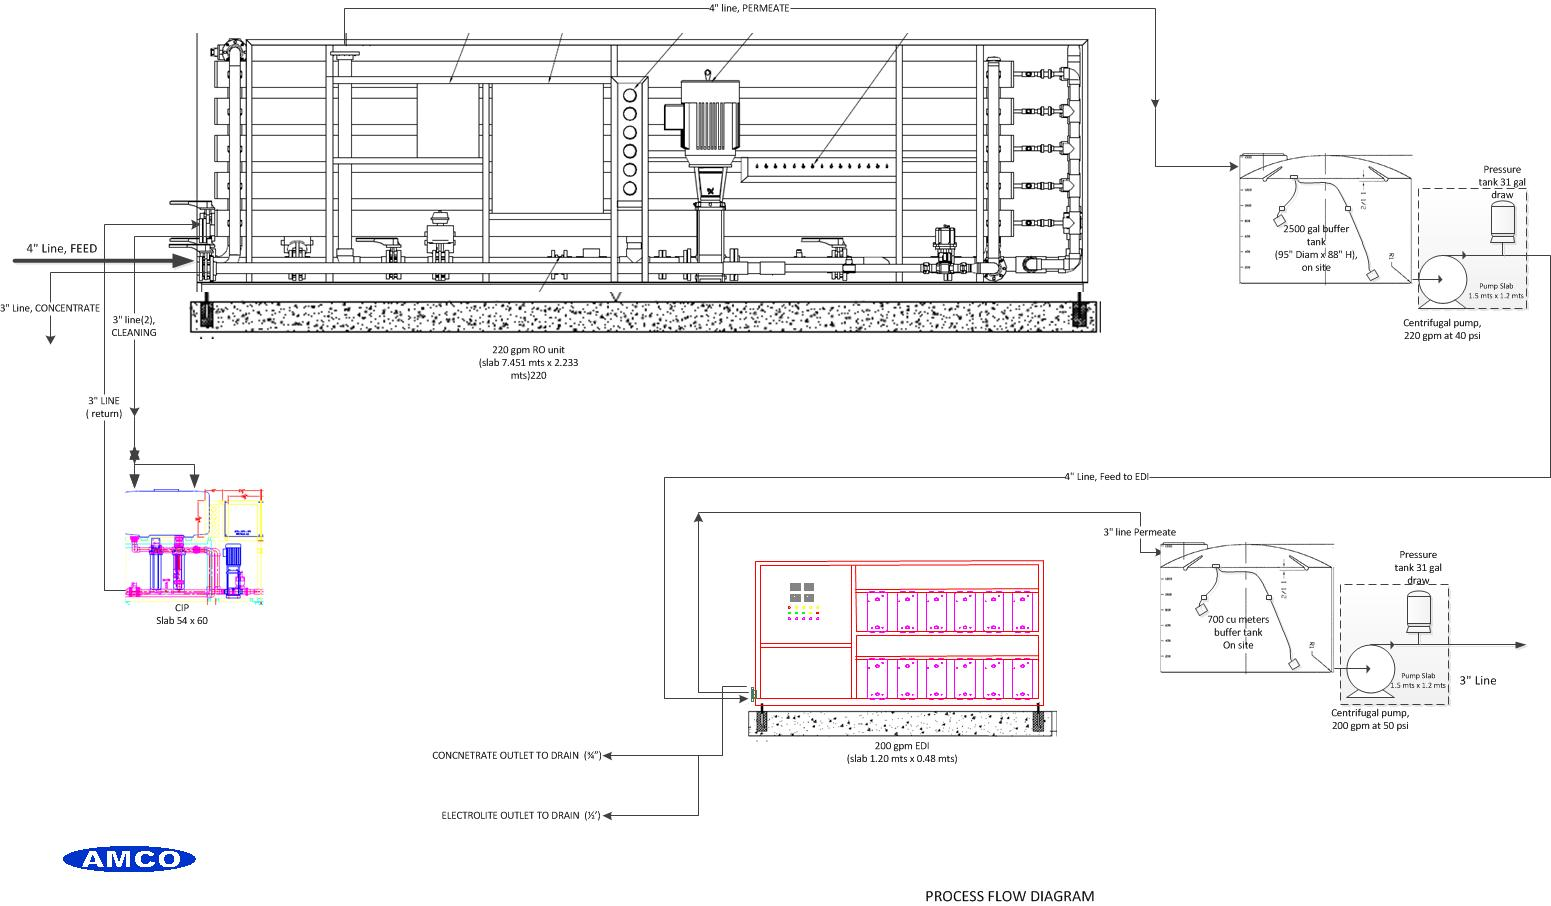 Gas Turbine Demineralized Water Systems American Process Flow Diagram Ro Plant 200 Gpm Edi For Power Generation